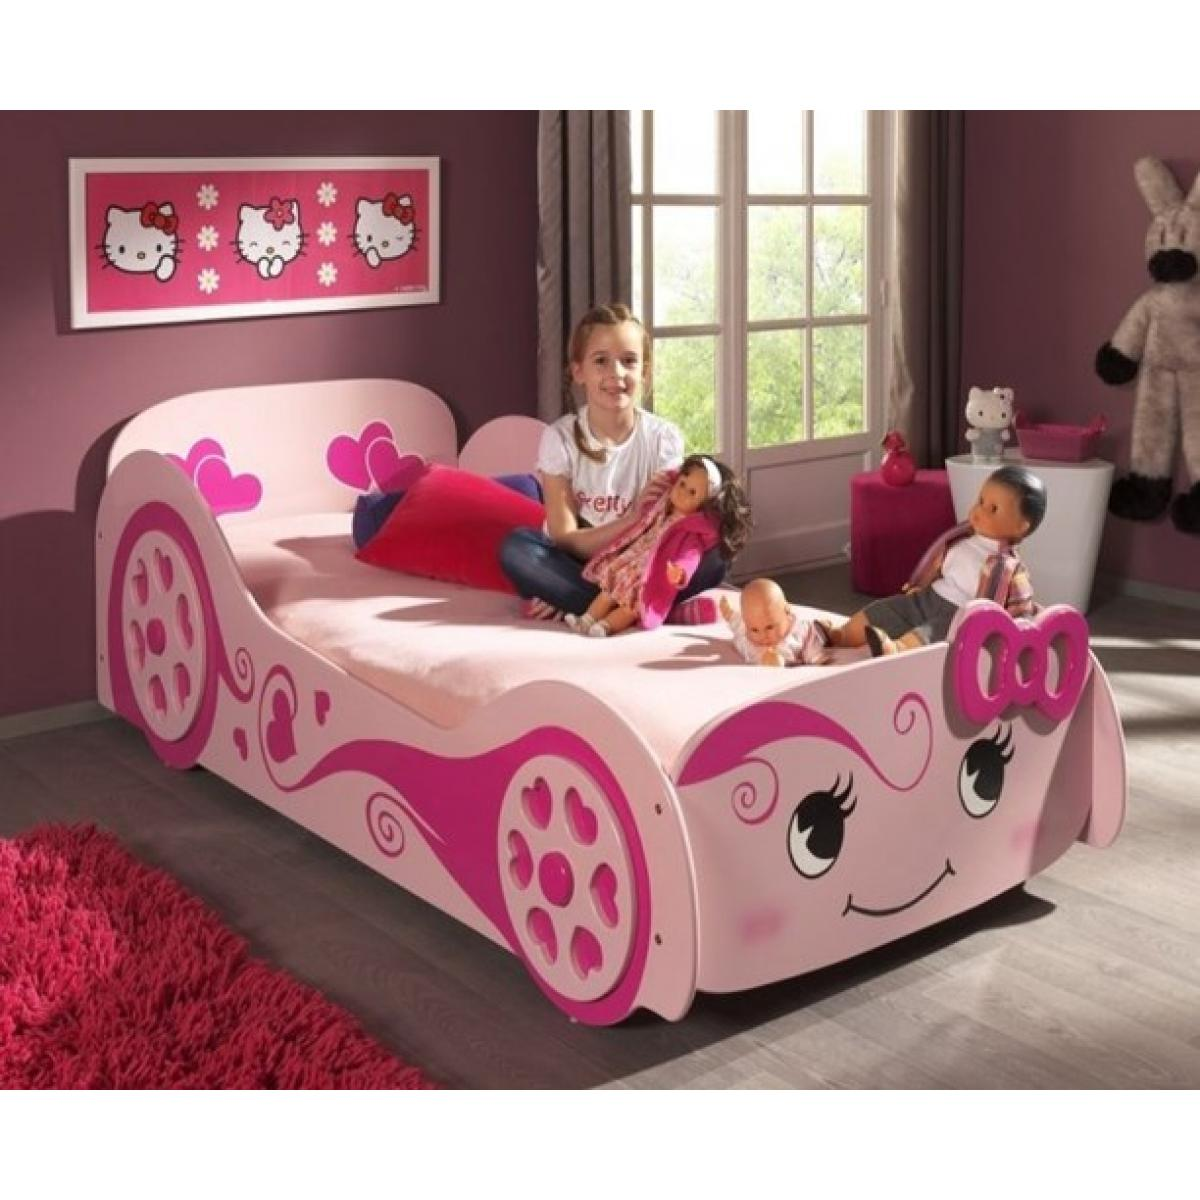 Girls Pink Racing Car Bed With Smiley Face